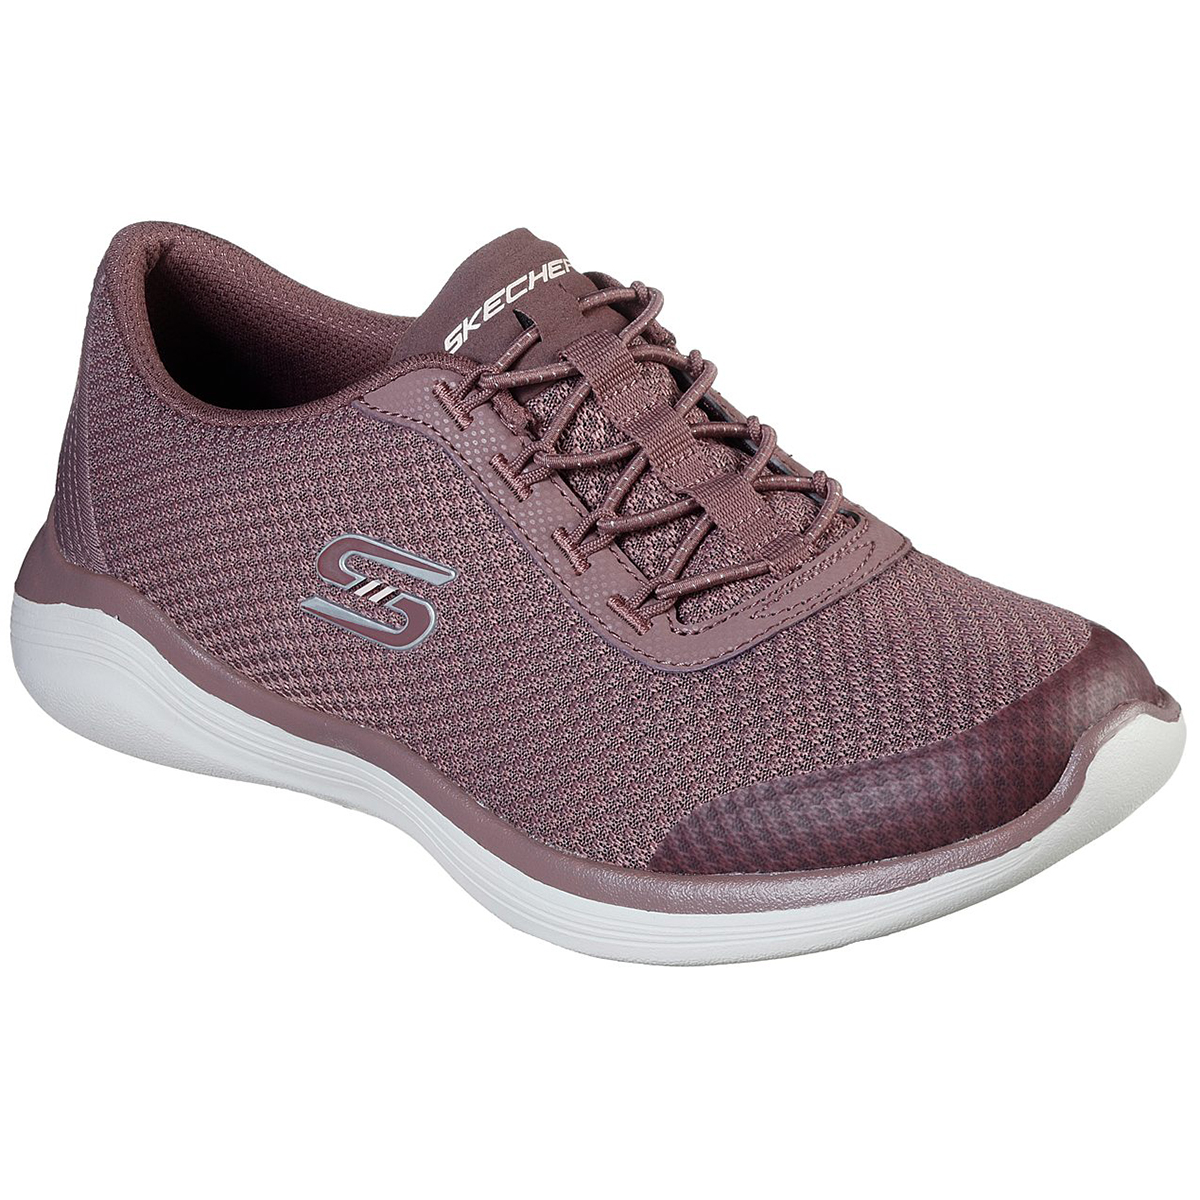 Skechers Women's Envy - Good Thinking Sneaker - Purple, 6.5